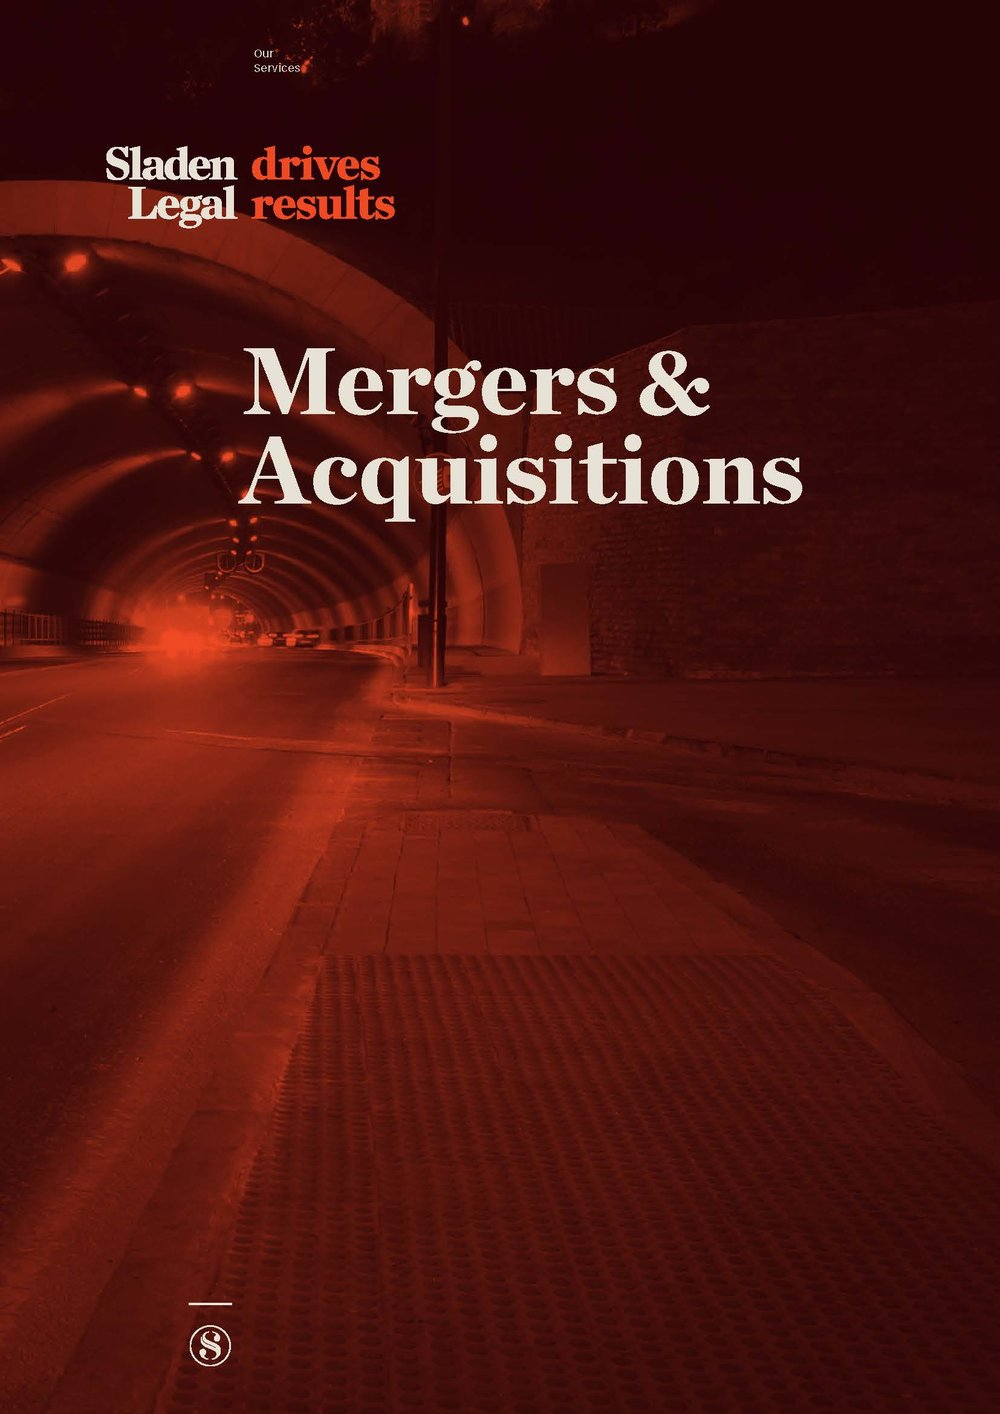 For more information download our Mergers & Acquisitions Brochure -